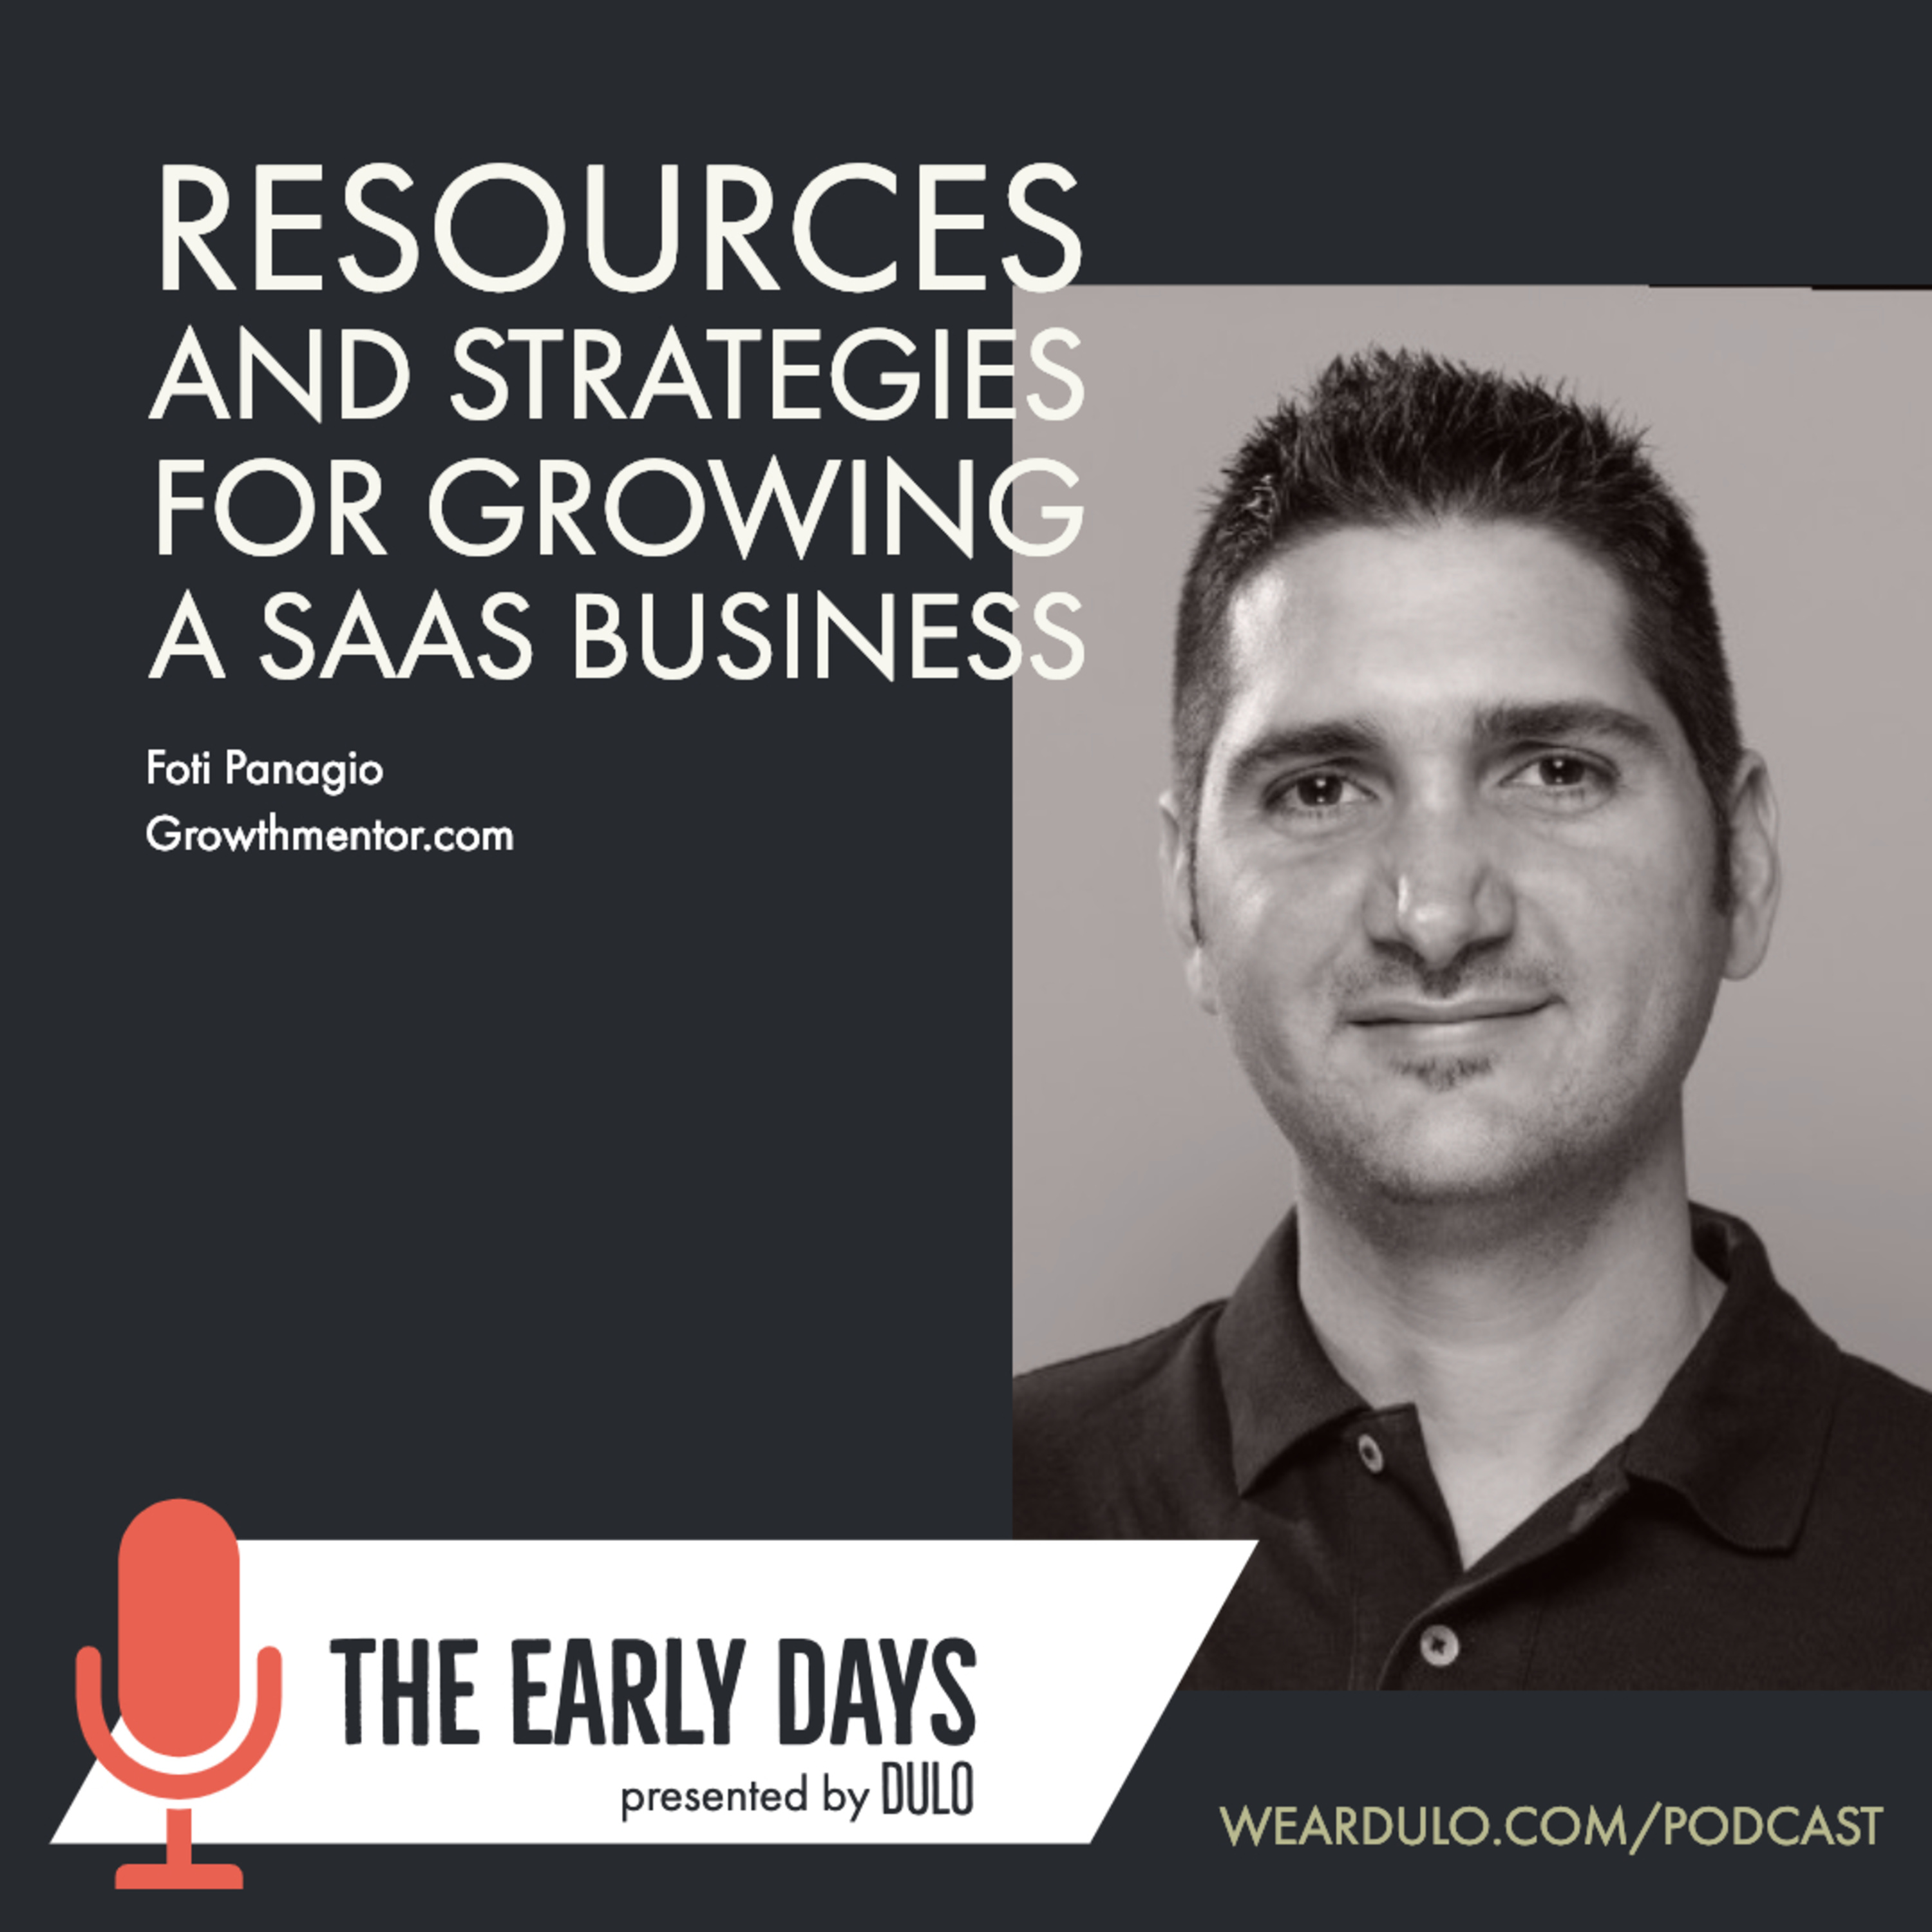 How to grow a SaaS business | The Early Days by DULO (S3E1)